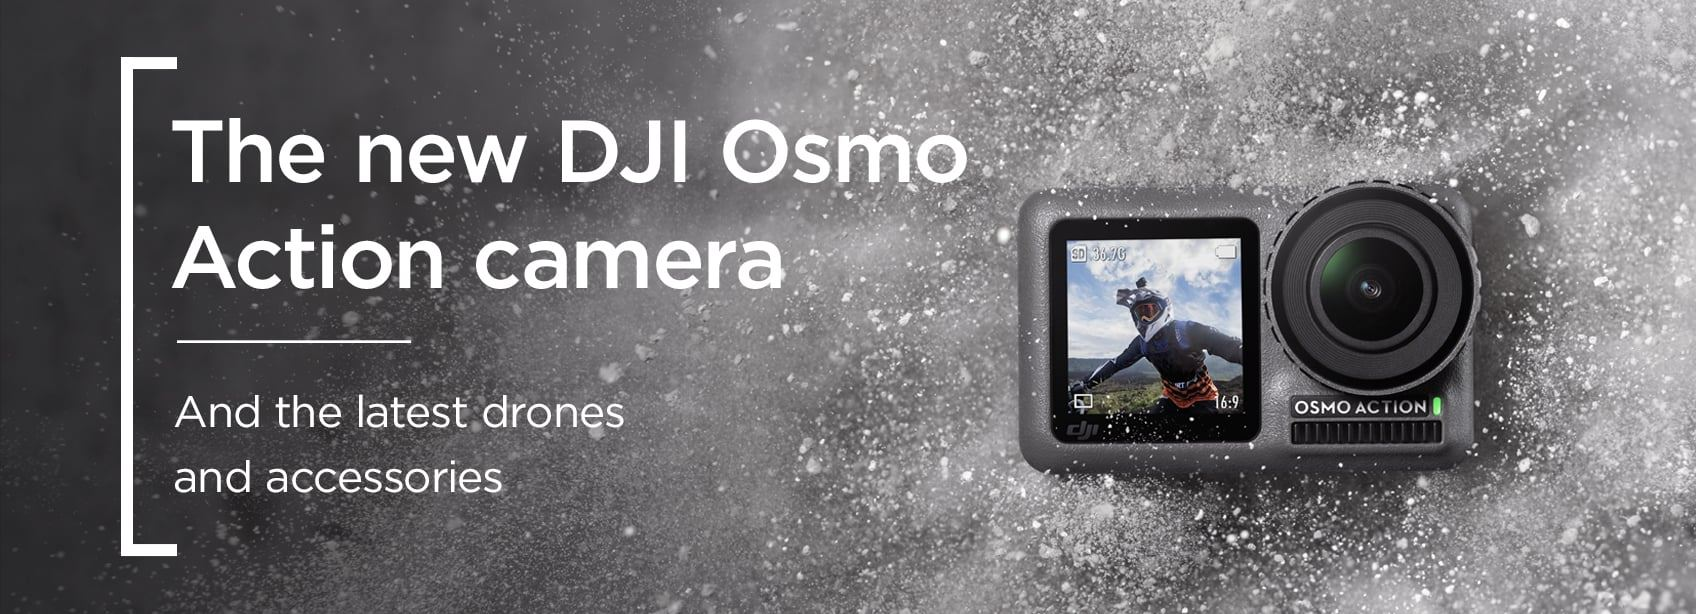 Just Launched DJI Osmo Action Camera | Wex Photo Video